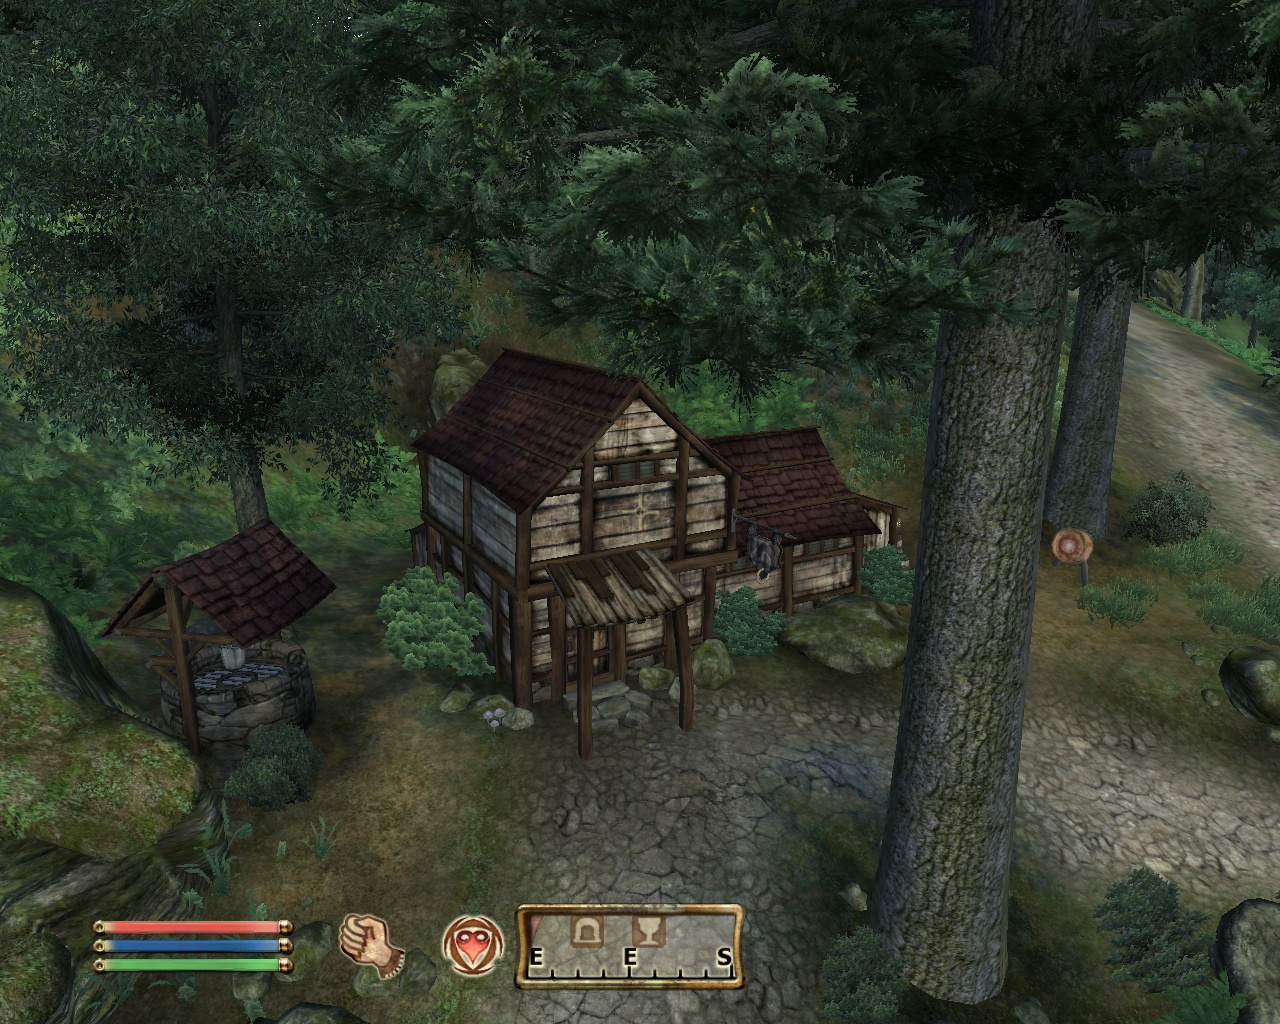 Brothel of cyrodiil oblivion mod nackt pictures